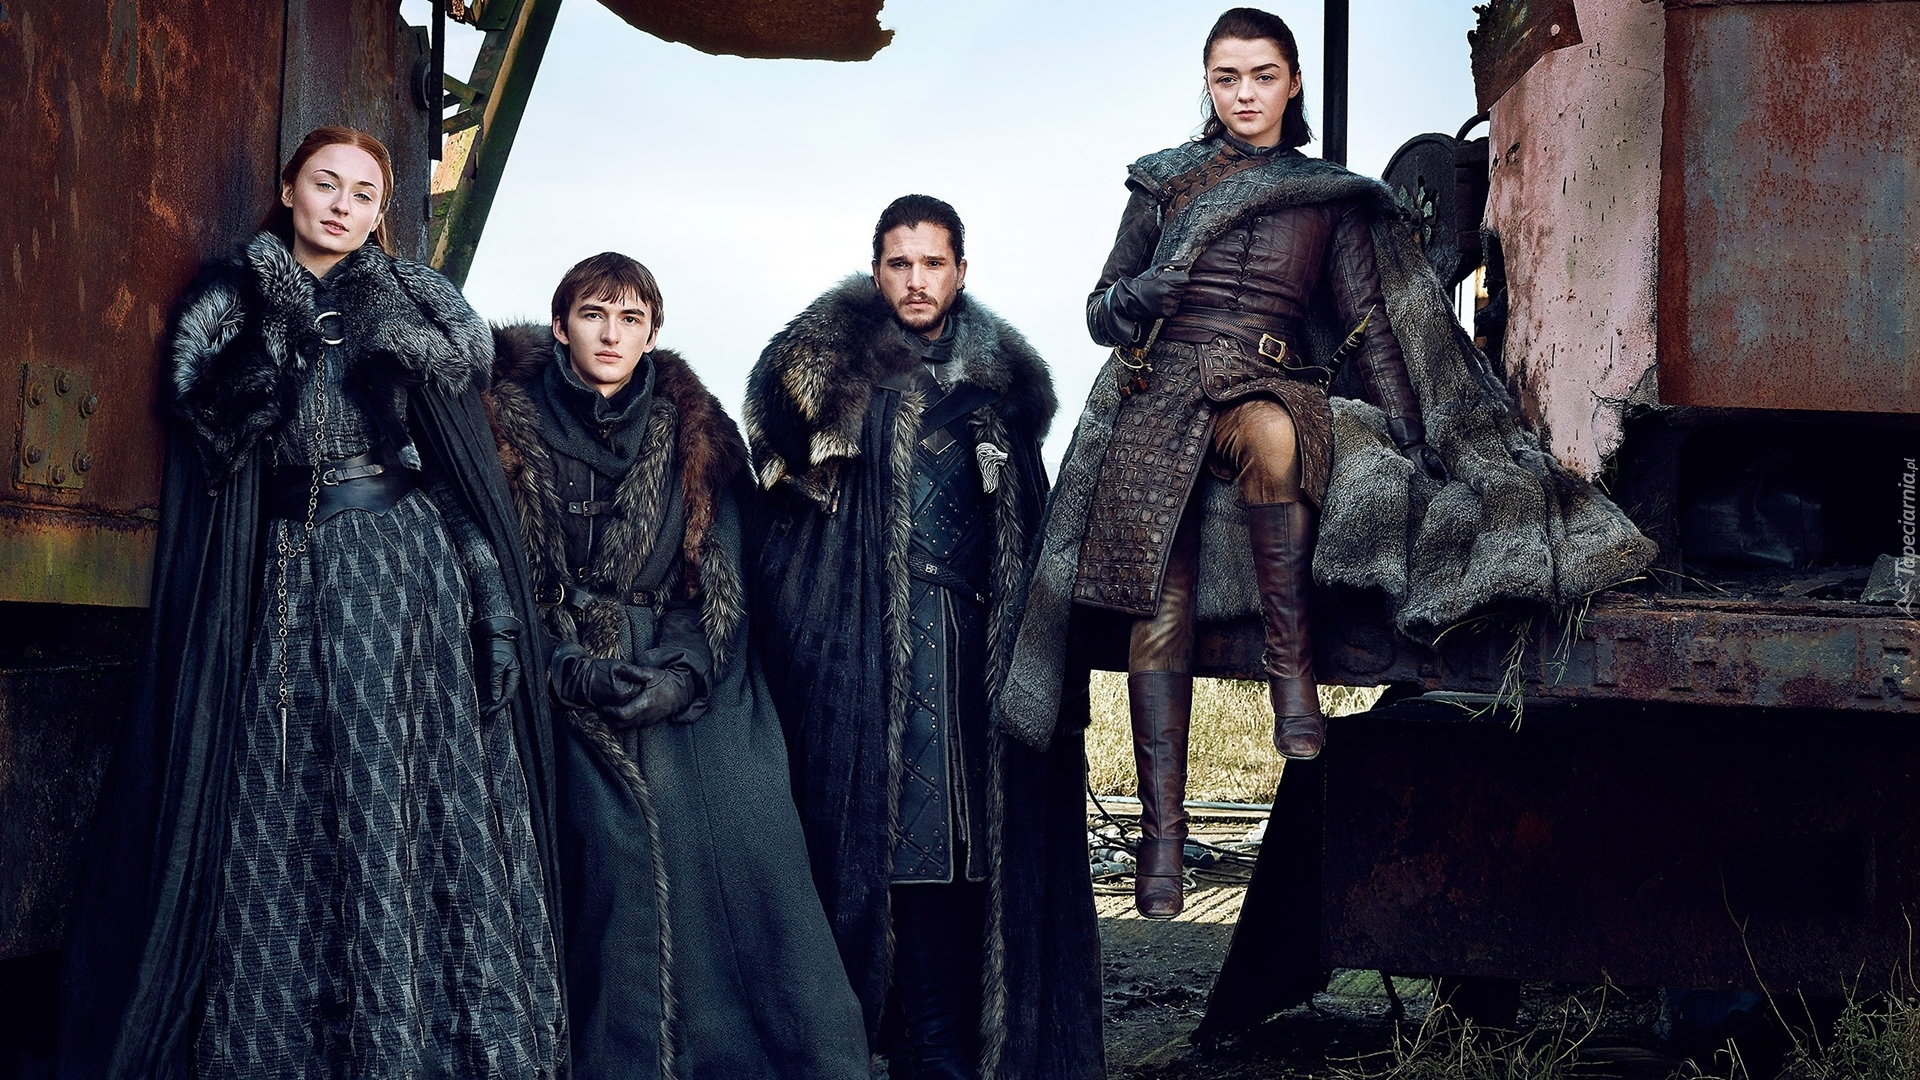 Gra o Tron, Game of Thrones, Sophie Turner - Sansa Stark, Isaac Hempstead-Wright - Bran Stark, Kit Harington - Jon Snow, Maisie Williams - Arya Stark